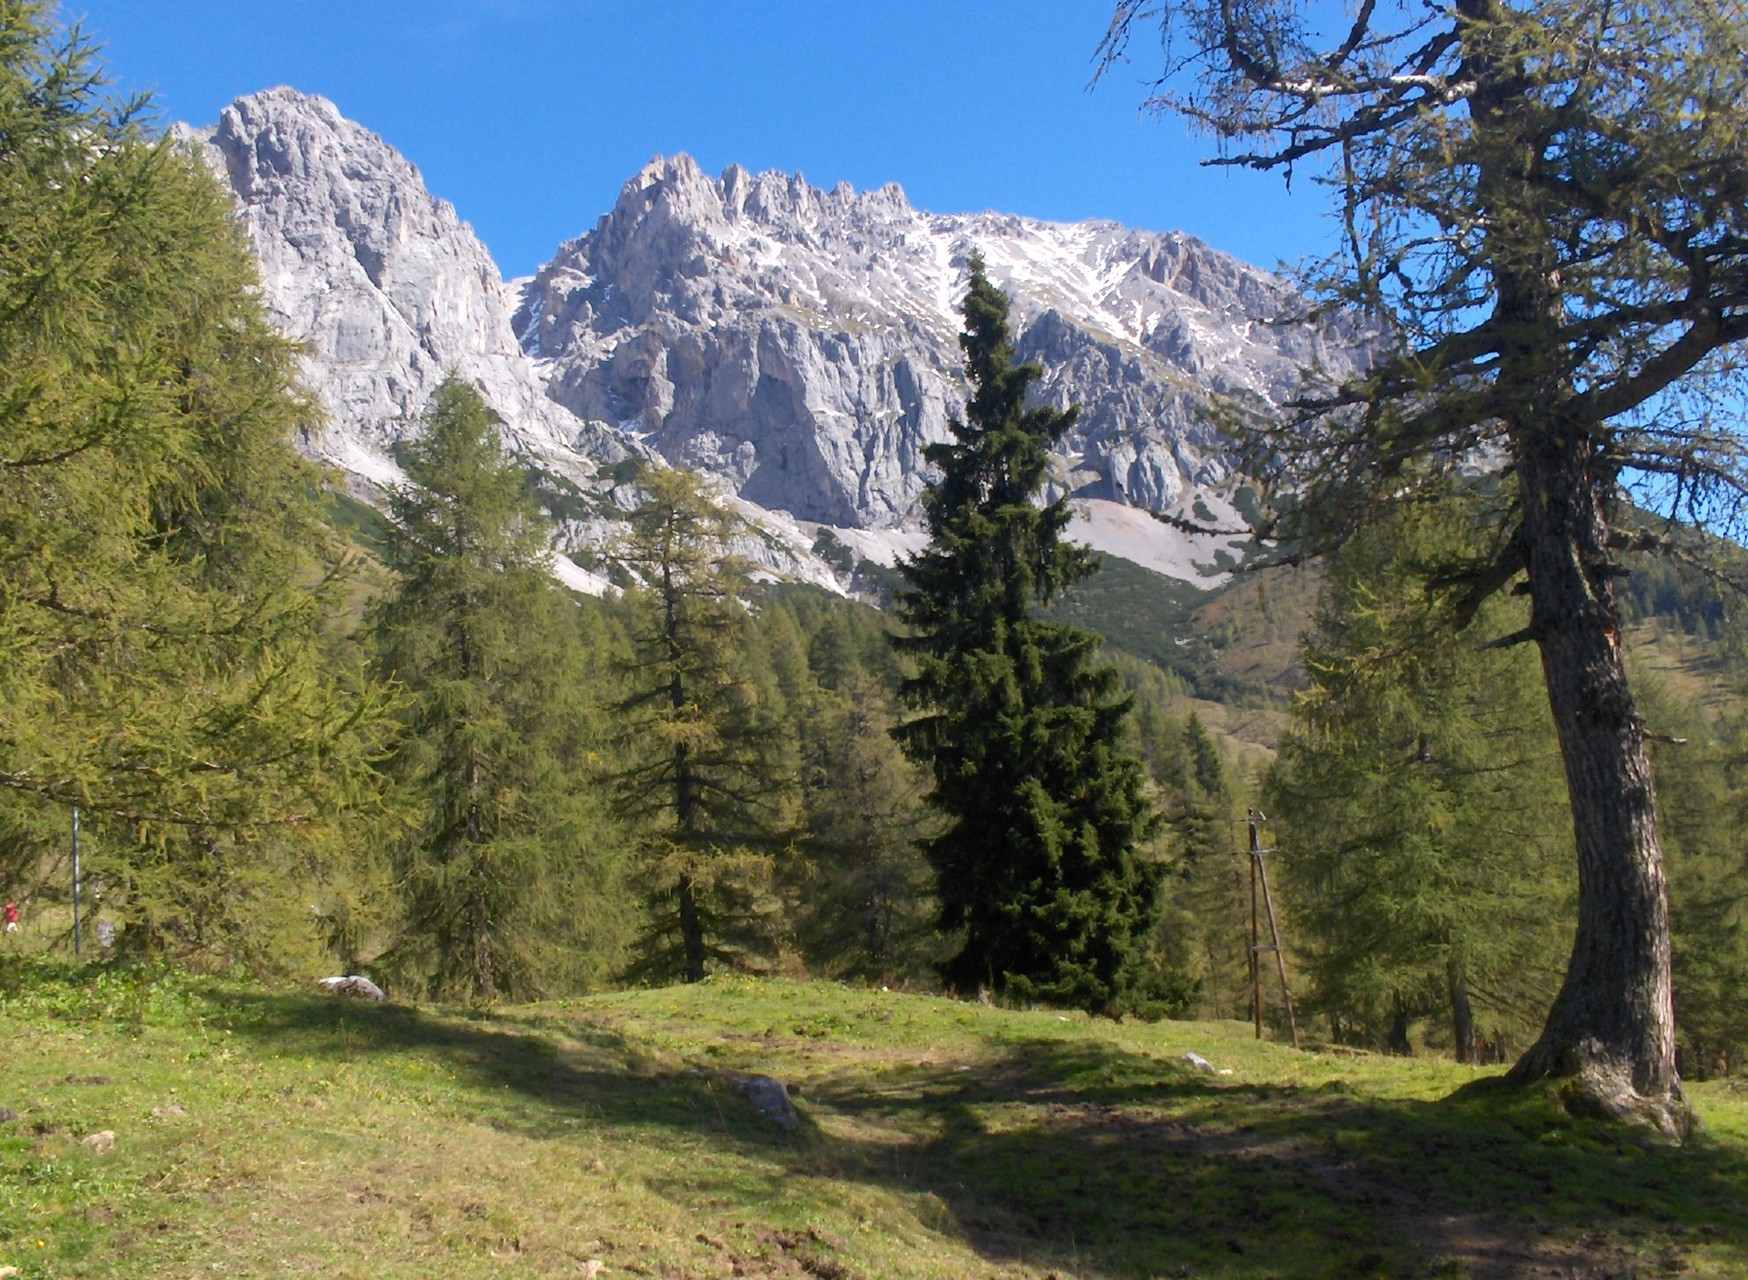 The high pastures under the Dachstein